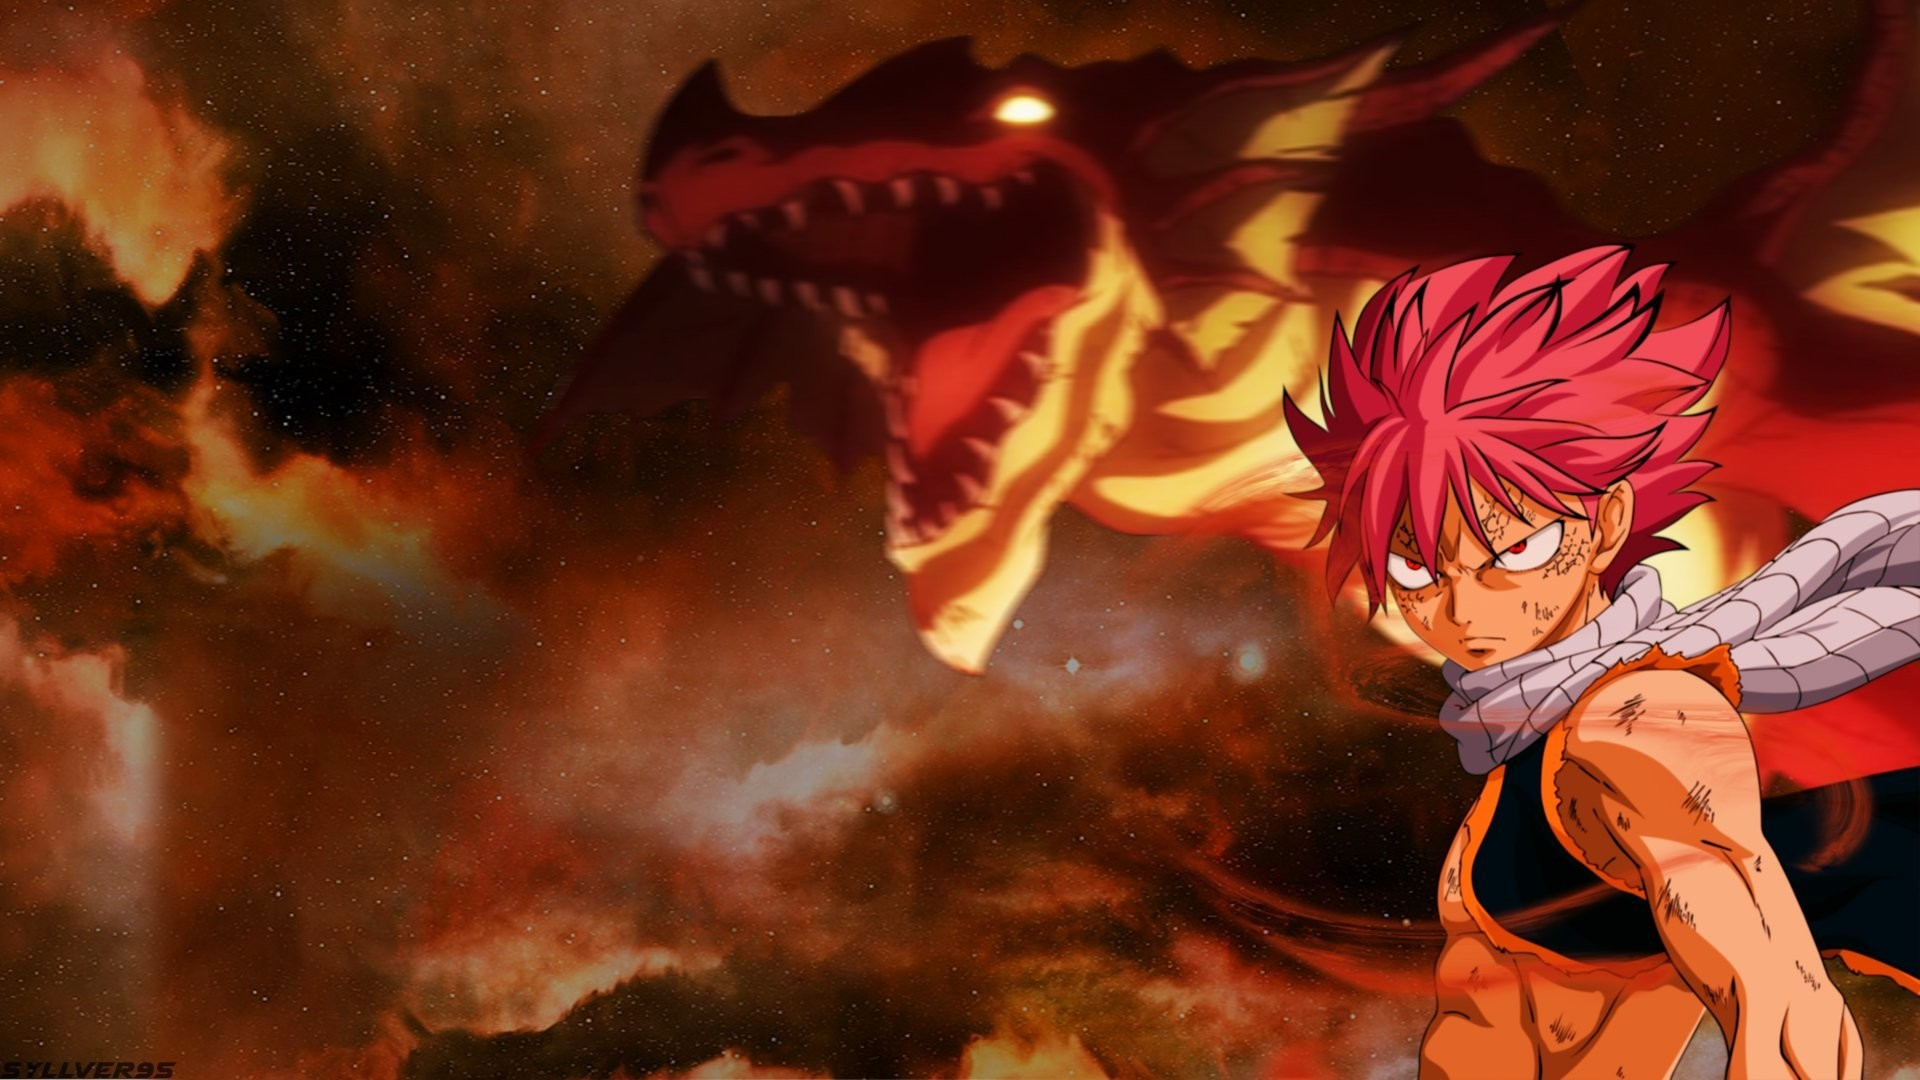 1920x1080  Anime - Fairy Tail Igneel (Fairy Tail) Natsu Dragneel Drachen  Feuer Anime Wallpaper